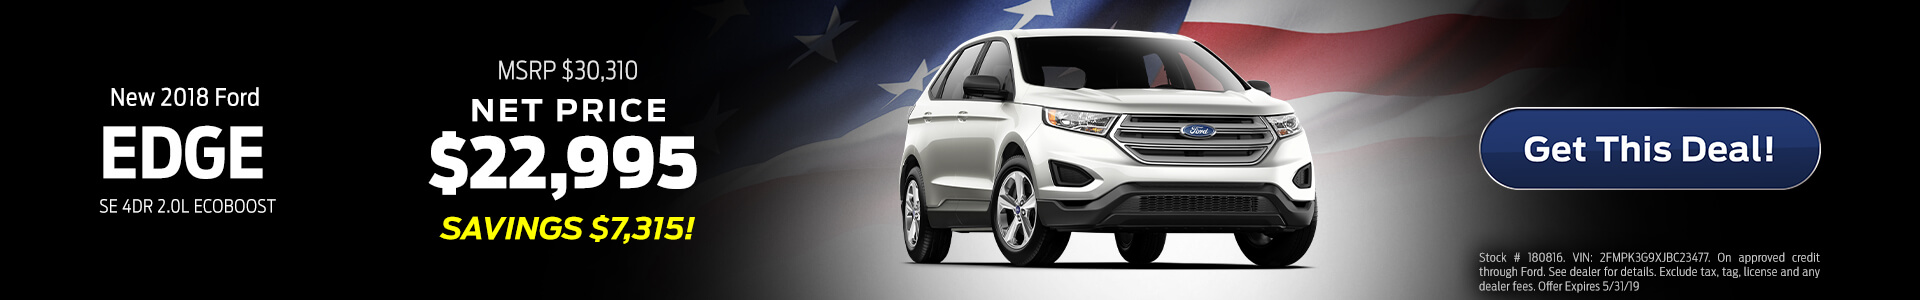 Ford Edge $22,995 Purchase